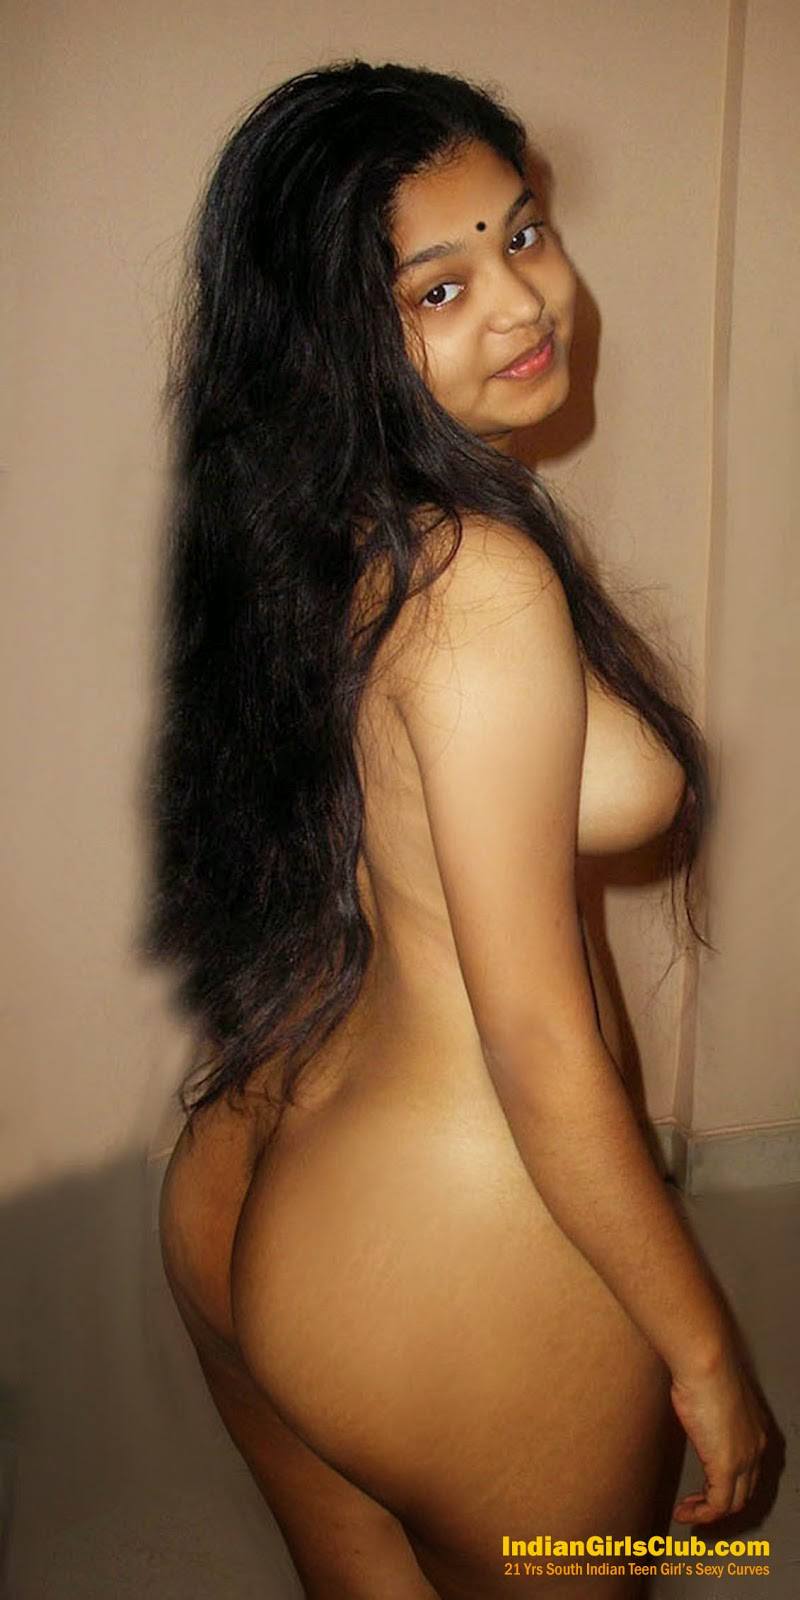 Indian Women Nude Photo - Photo Xxx-2405